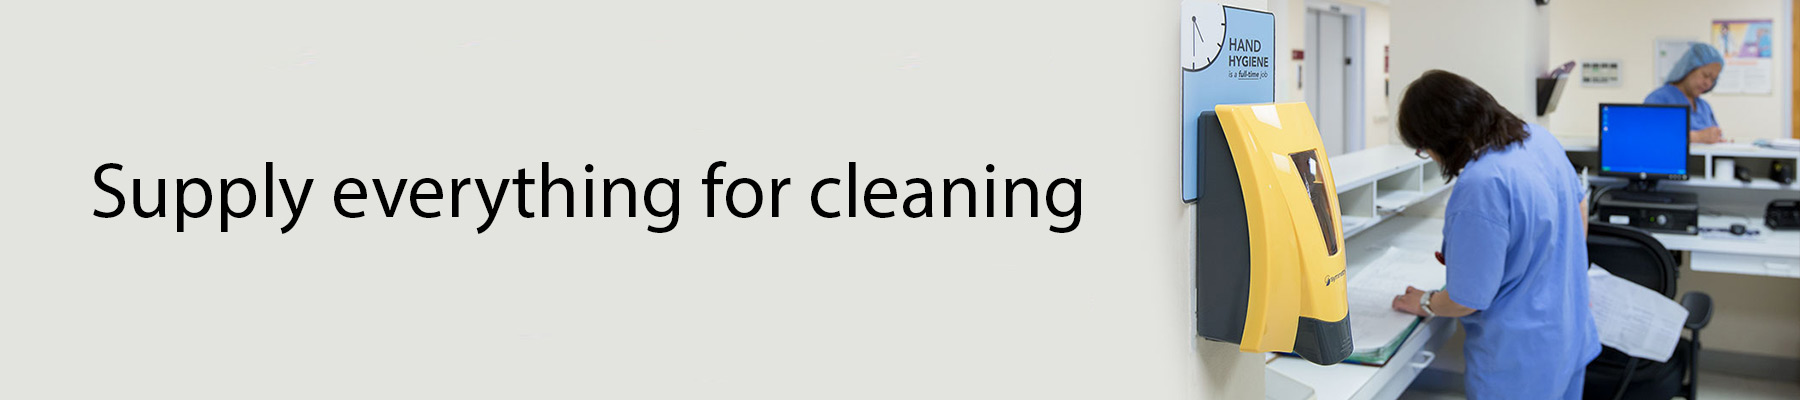 feature-cleaning-supply